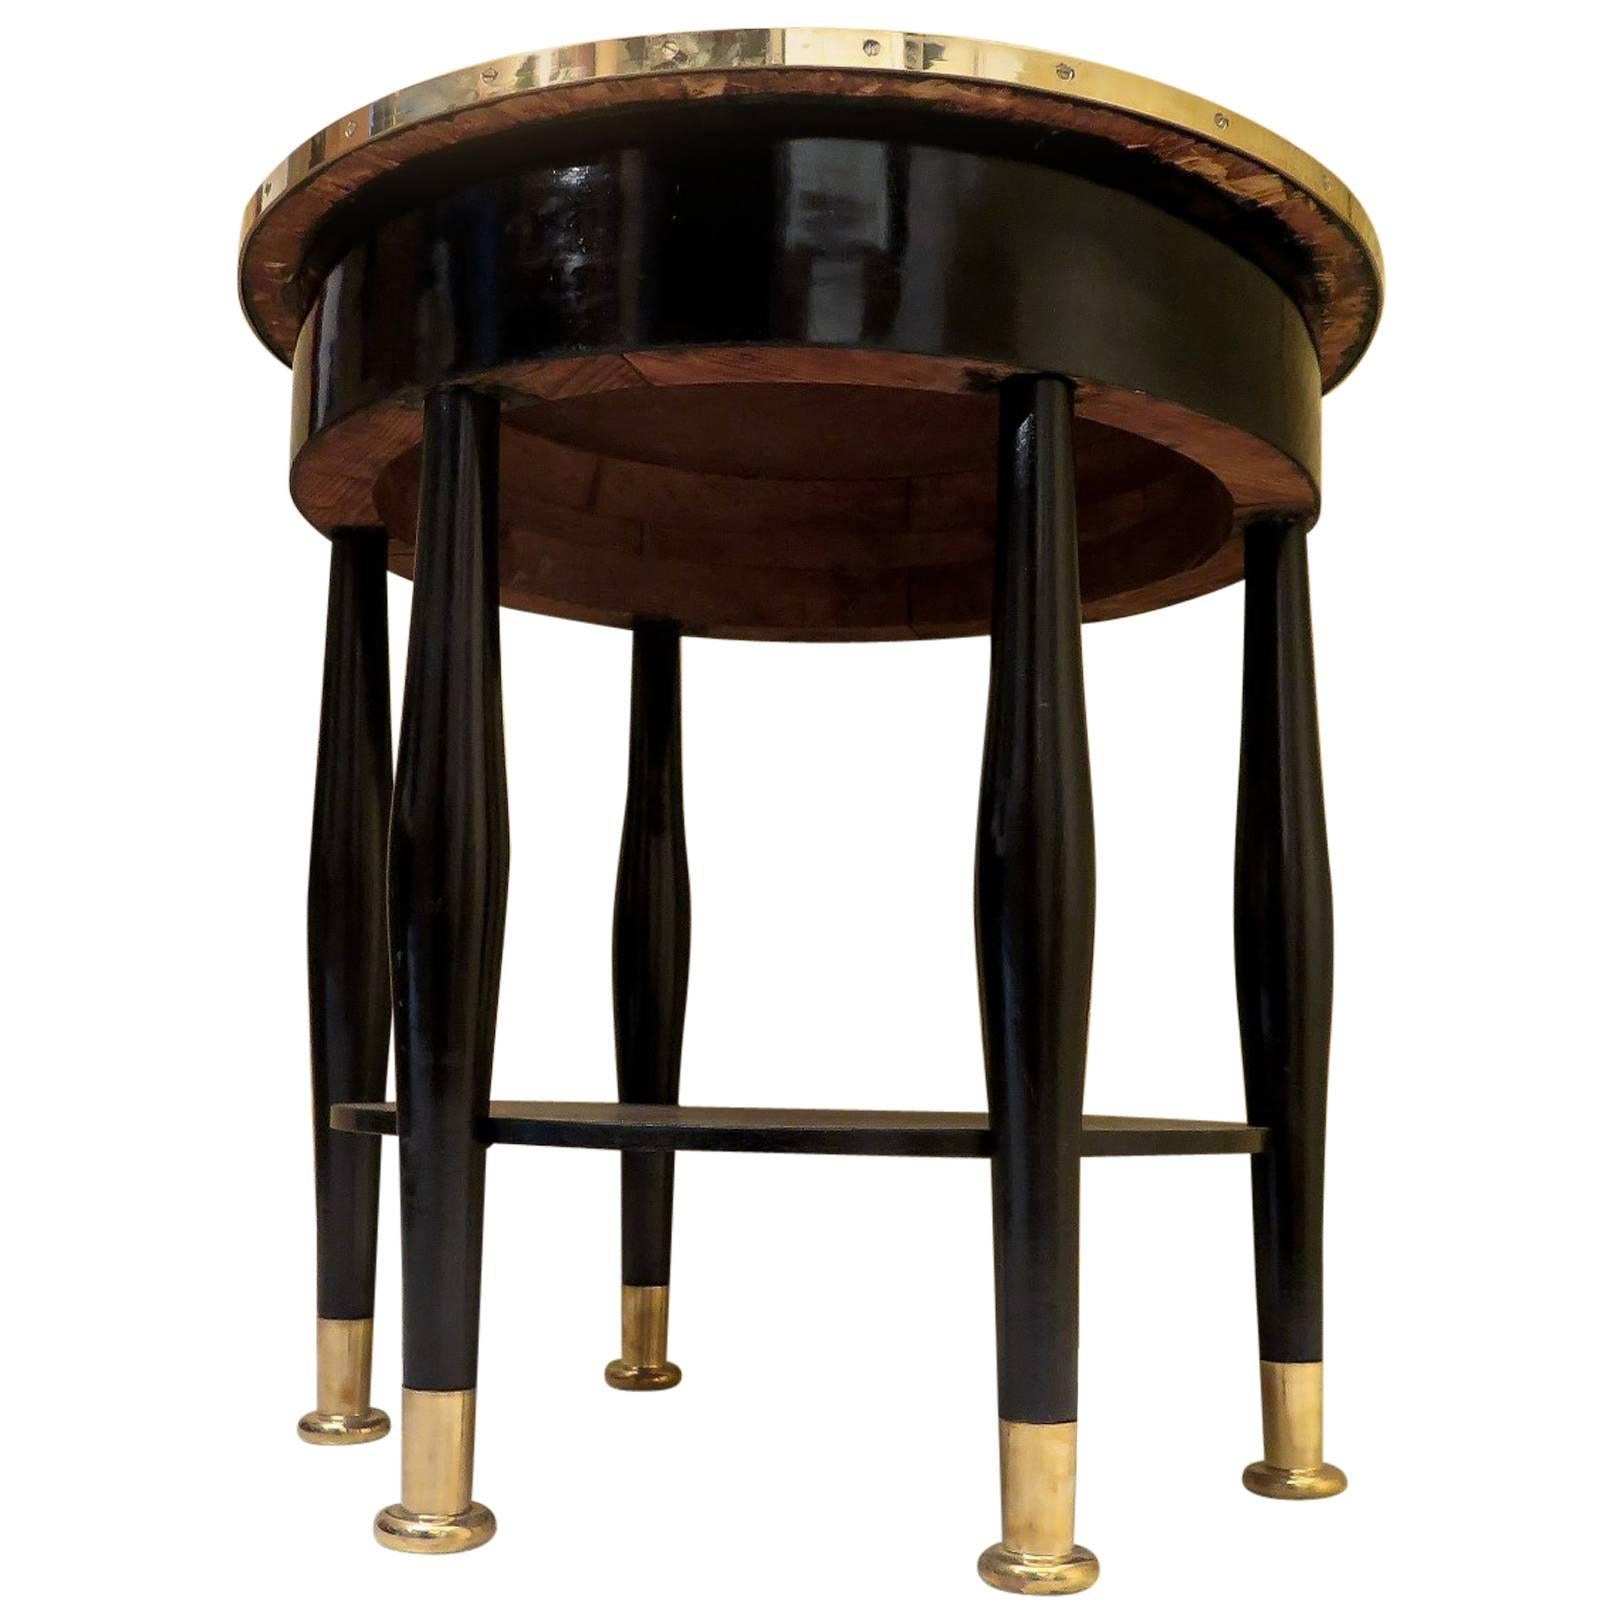 Adolf Loos Round Black Shellac and Brass Austrian Art Nouveau Side Table, 1910